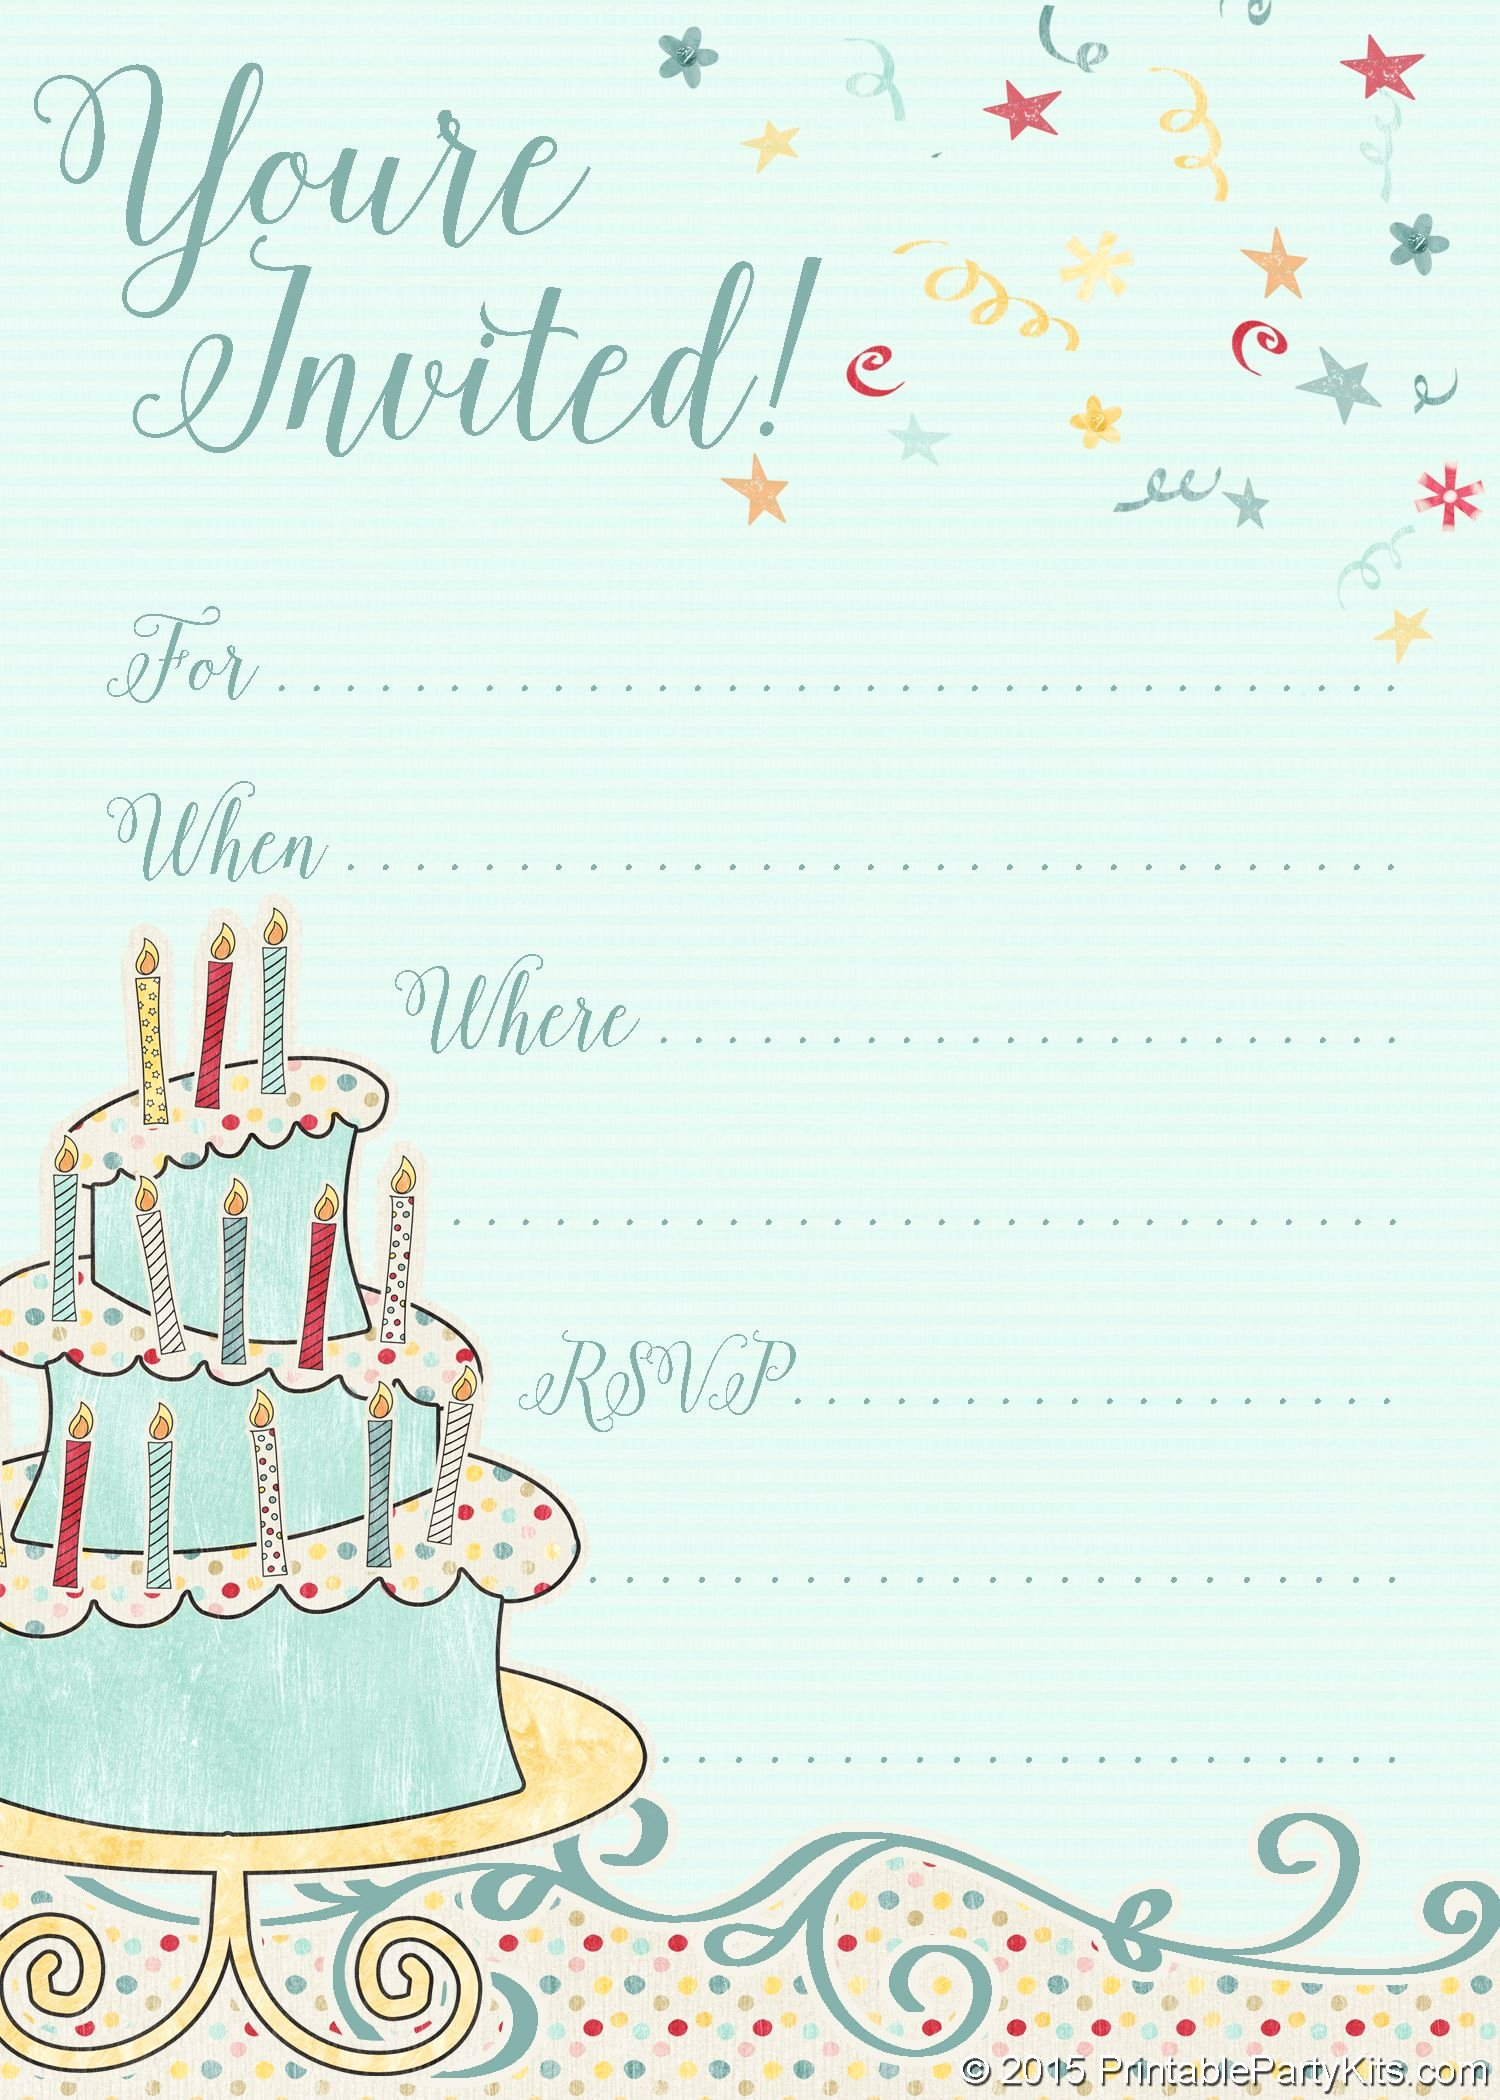 Free Anniversary Invitation Templates Luxury Free Printable Whimsical Birthday Party Invitation